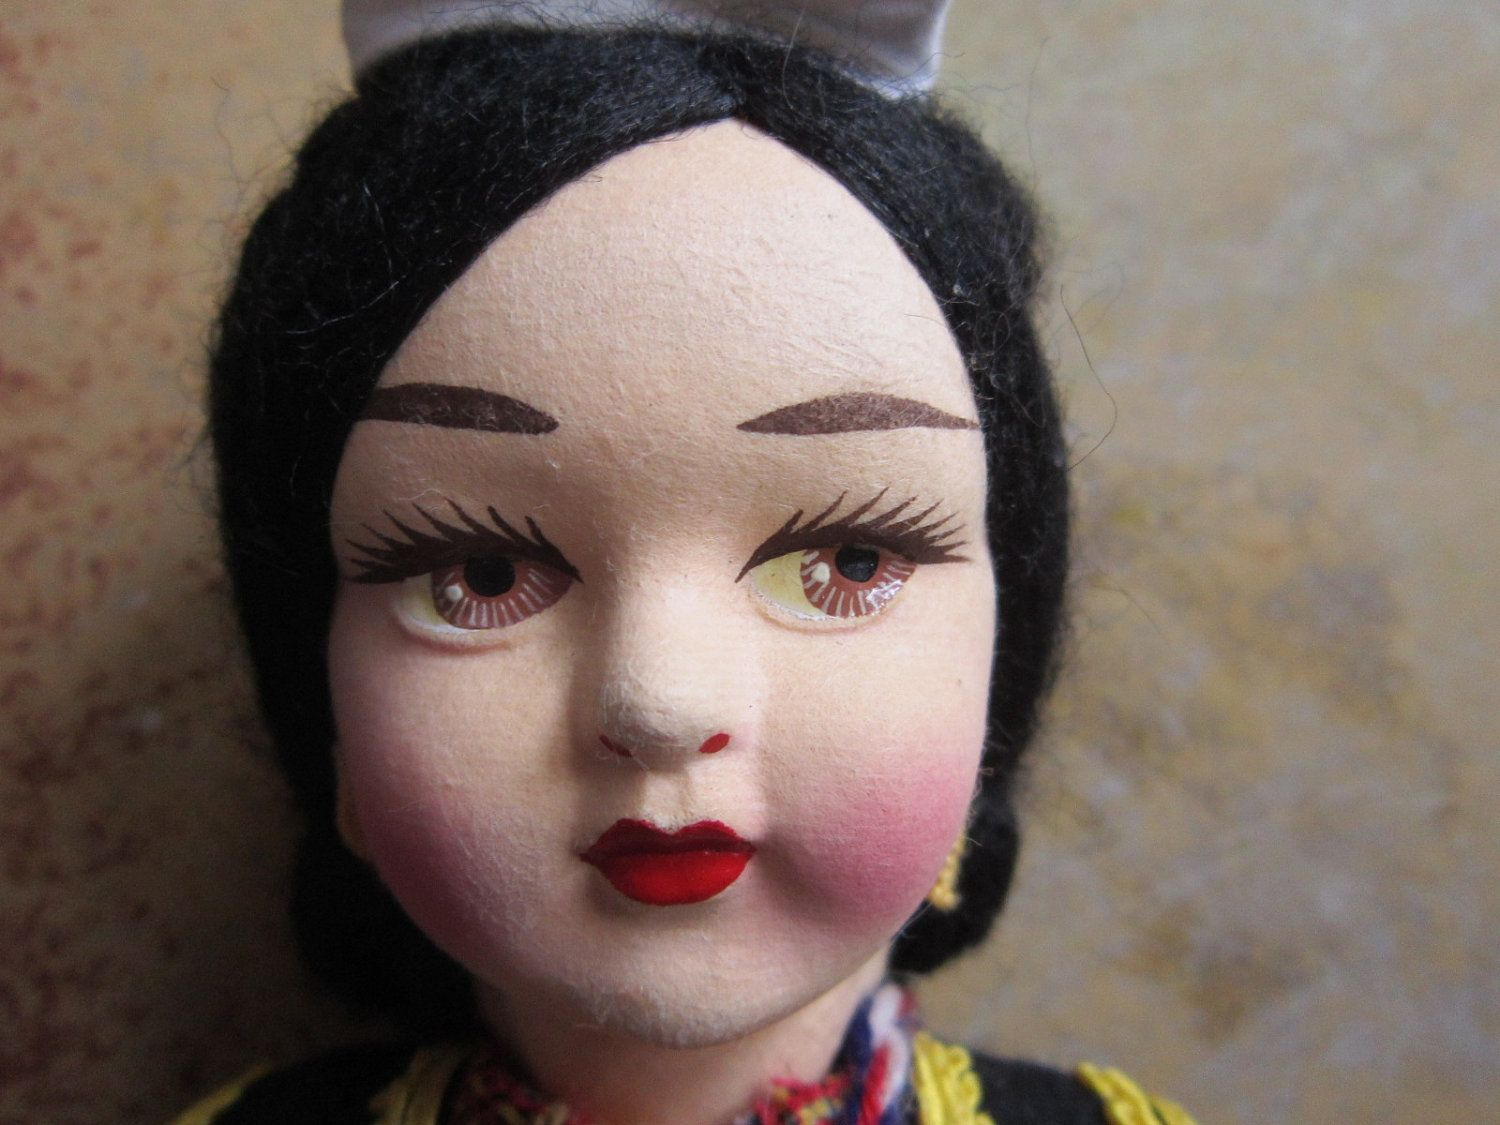 Doll 2 Crooked Eyebrows Beauts Pinterest Dolls And Eyebrows